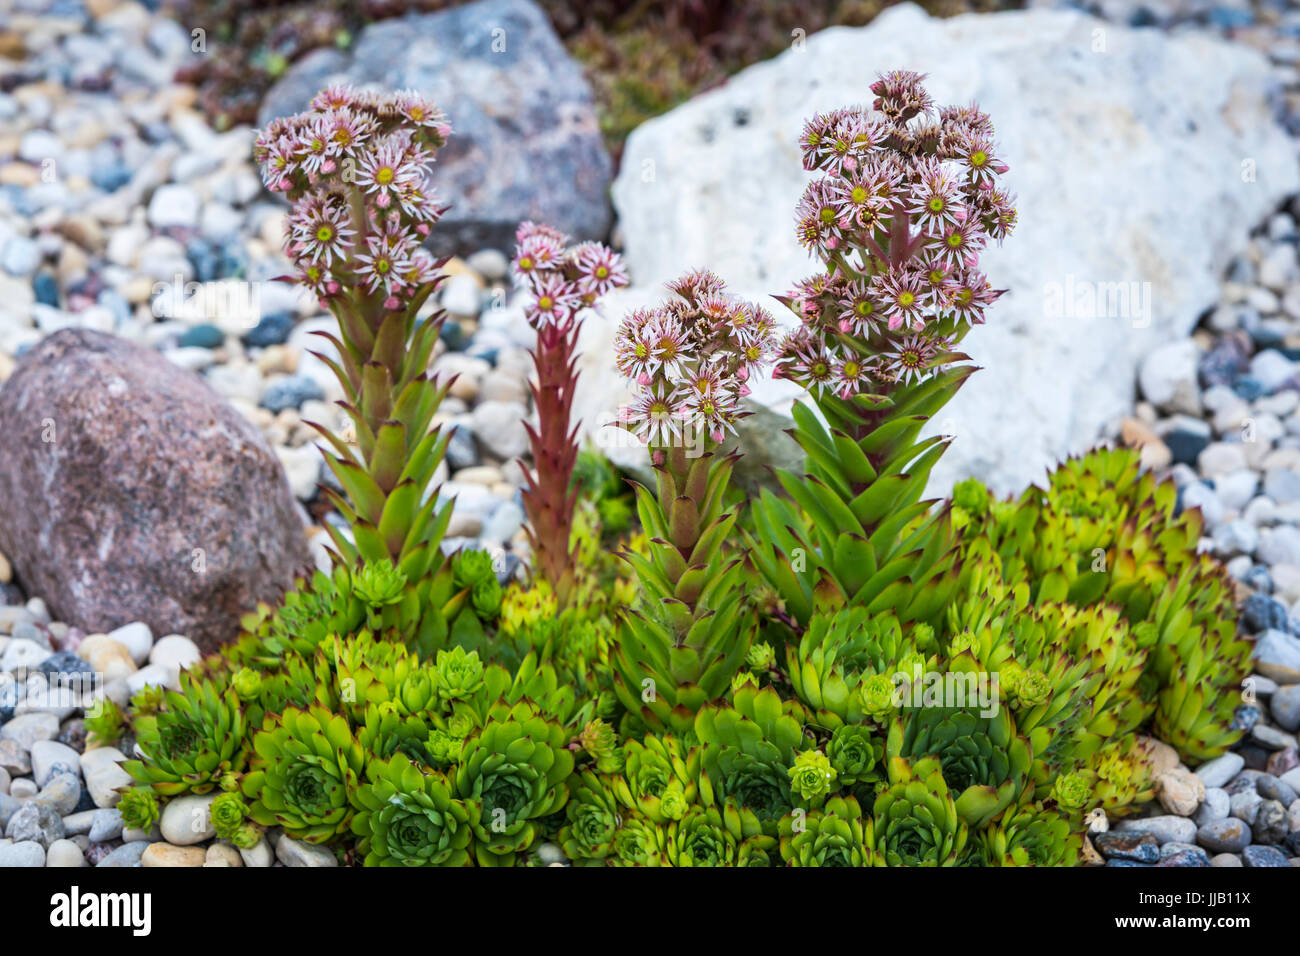 A flowering hen and chickens plant in a rock garden in Winkler, Manitoba, Canada. - Stock Image